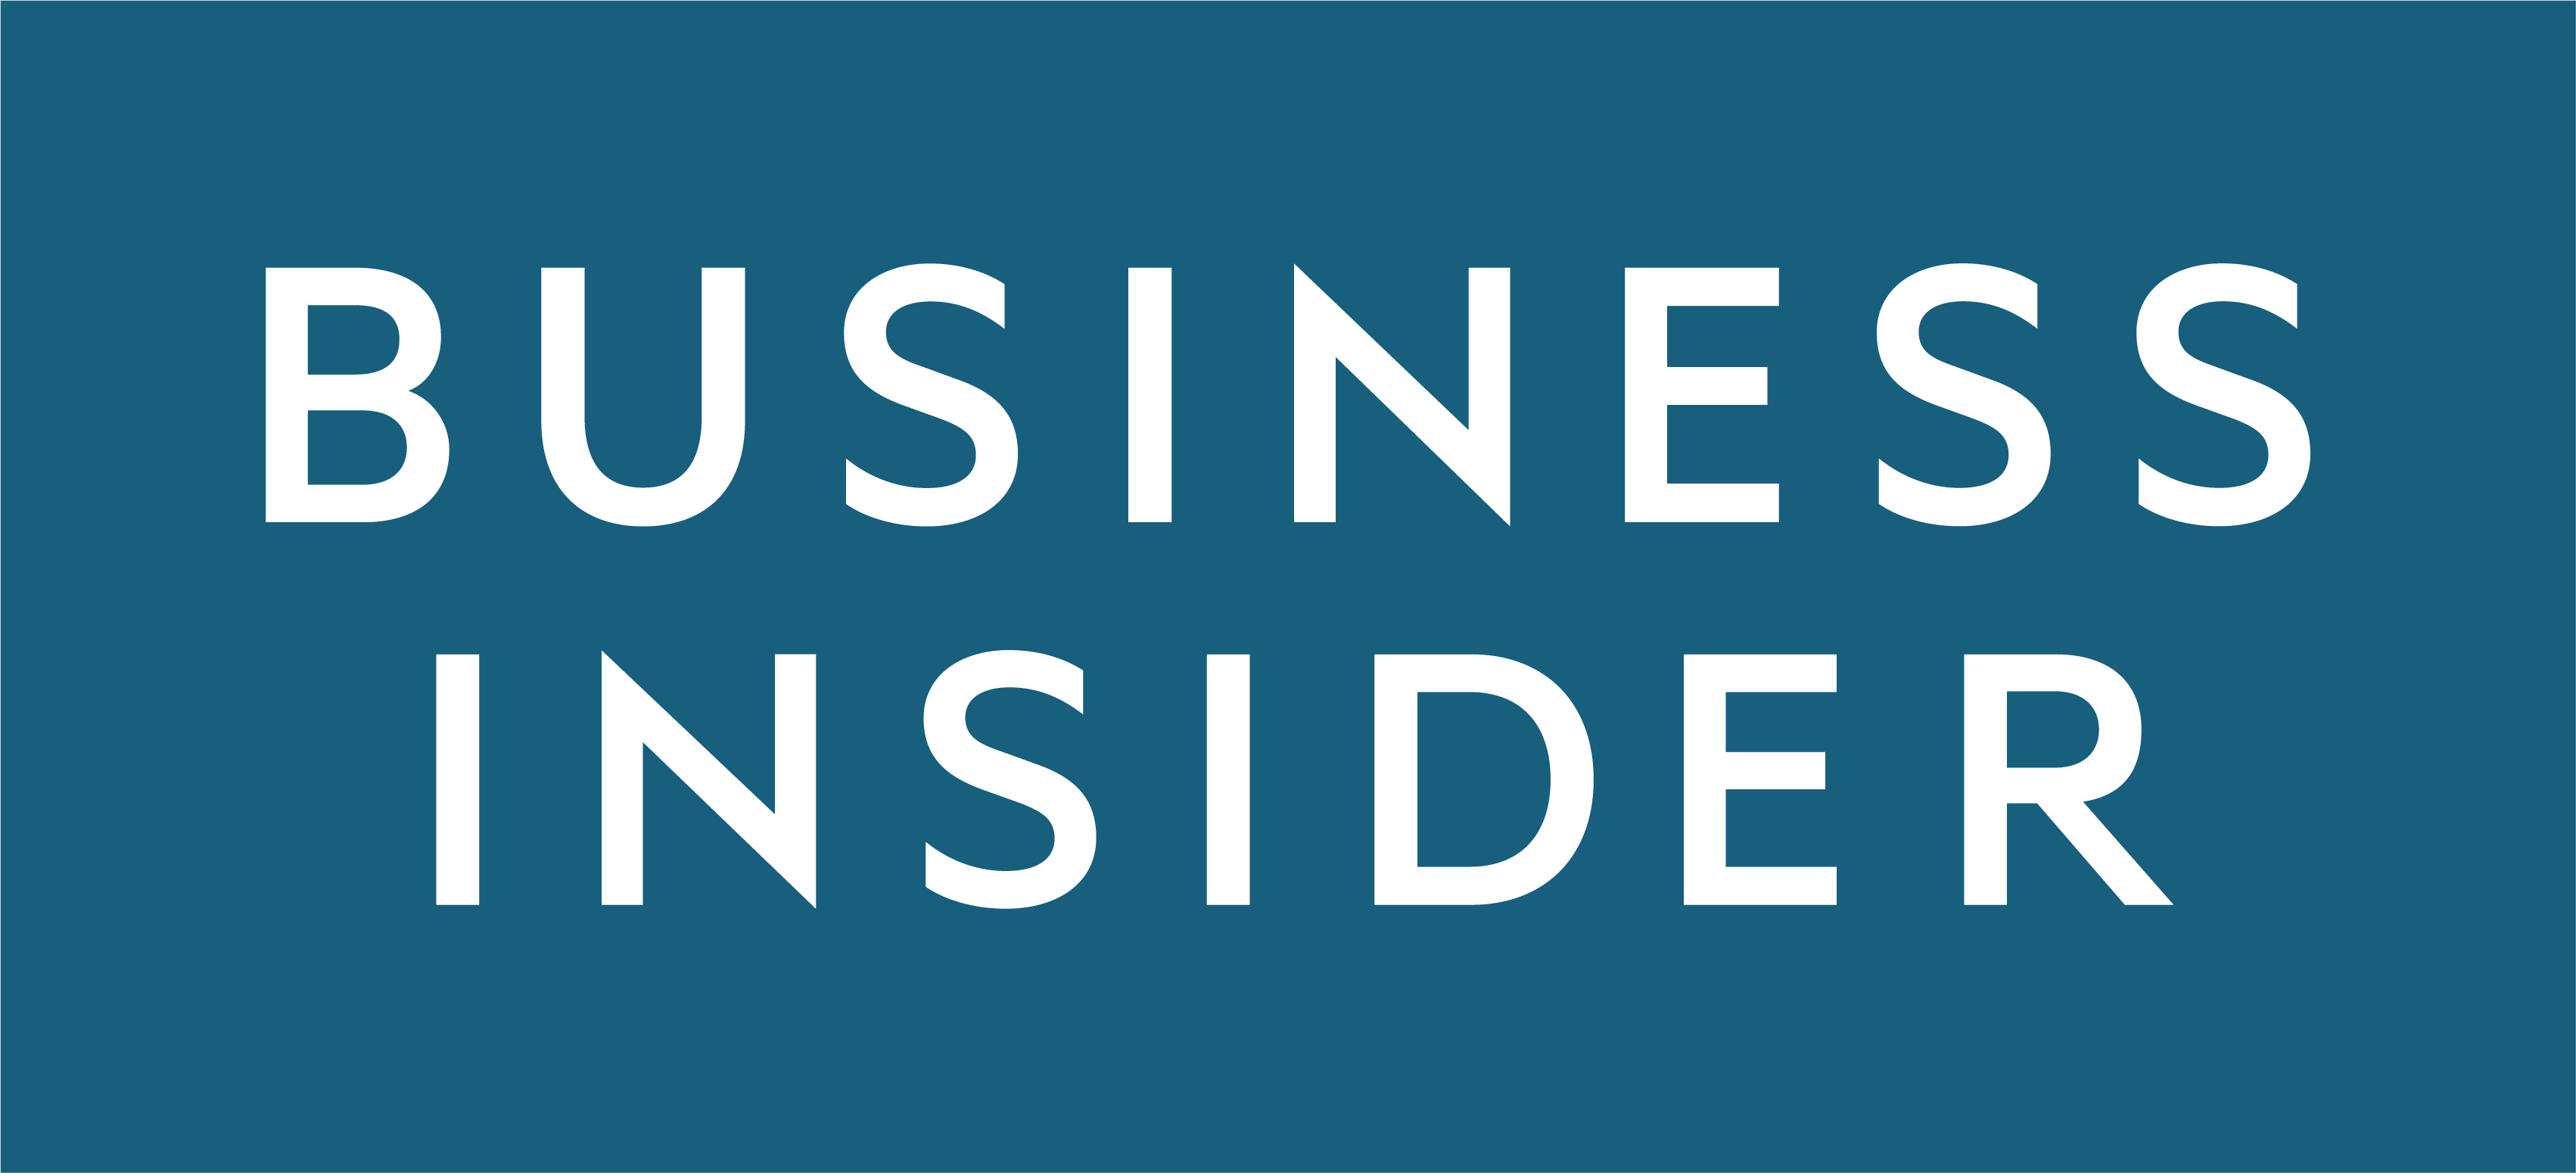 Business insider logo is show in white text against a blue background